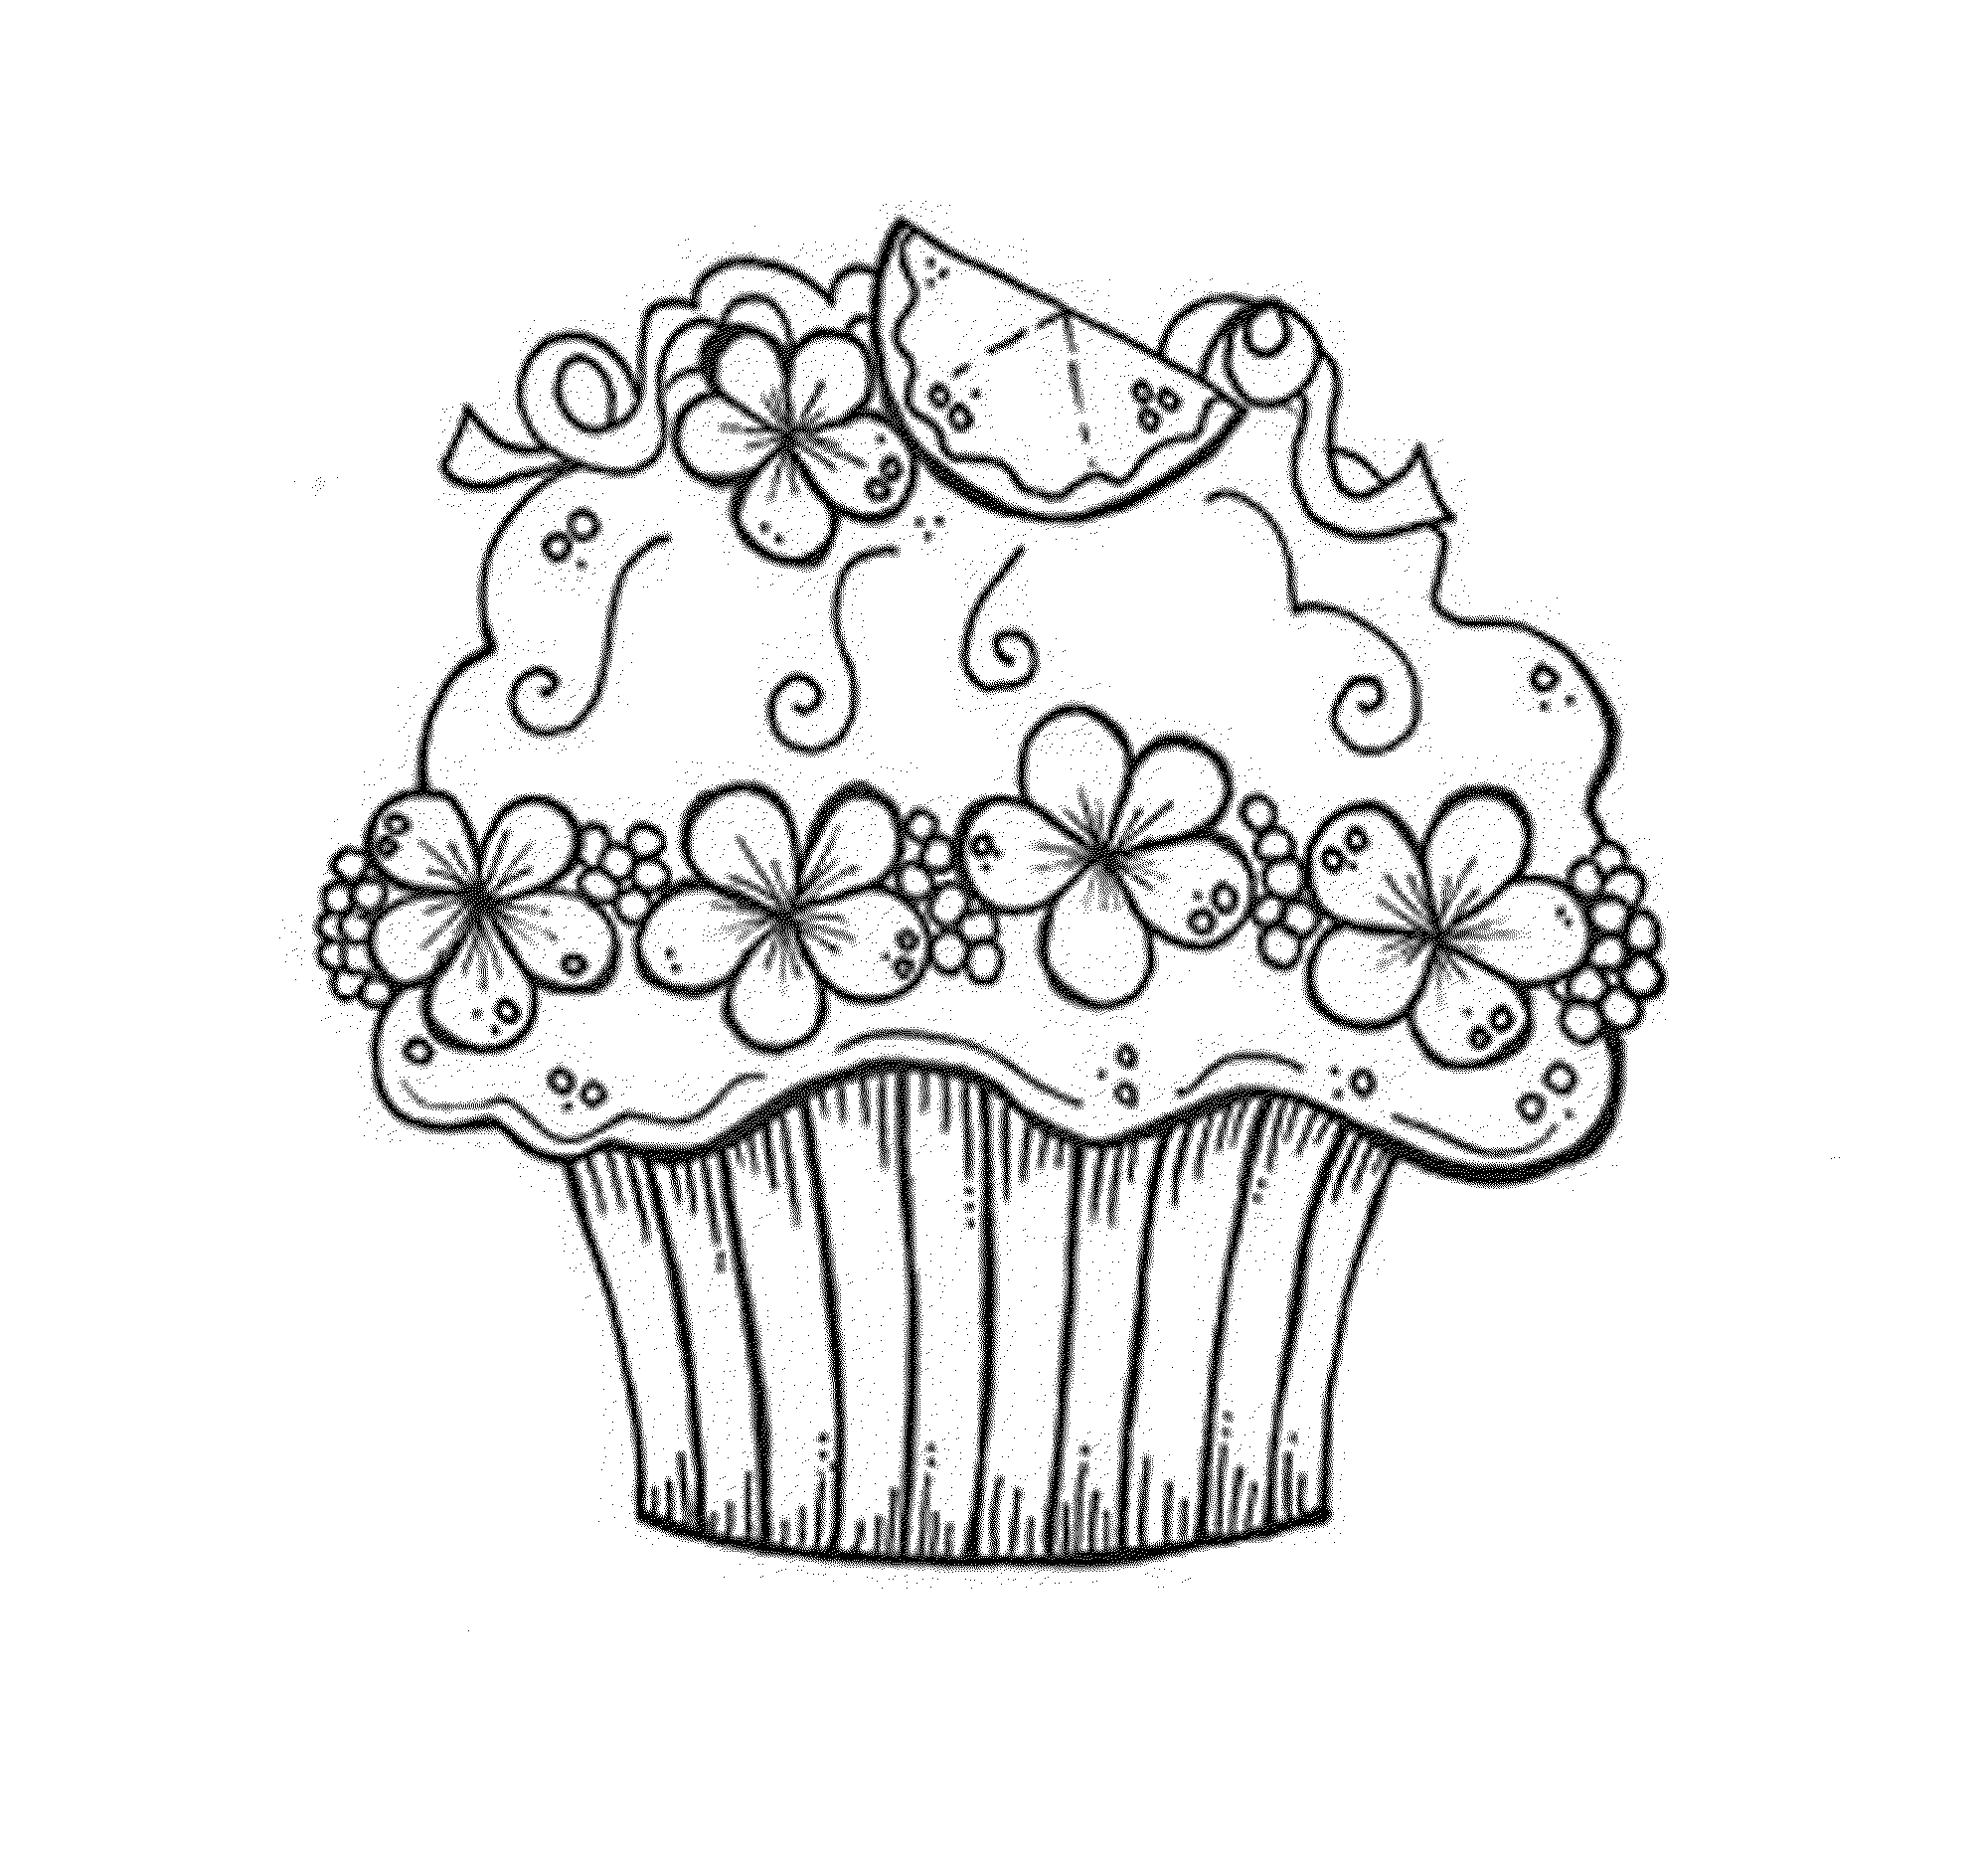 Free Printable Cupcake Coloring Pages For Kids Crafts And ... | 1870x2000